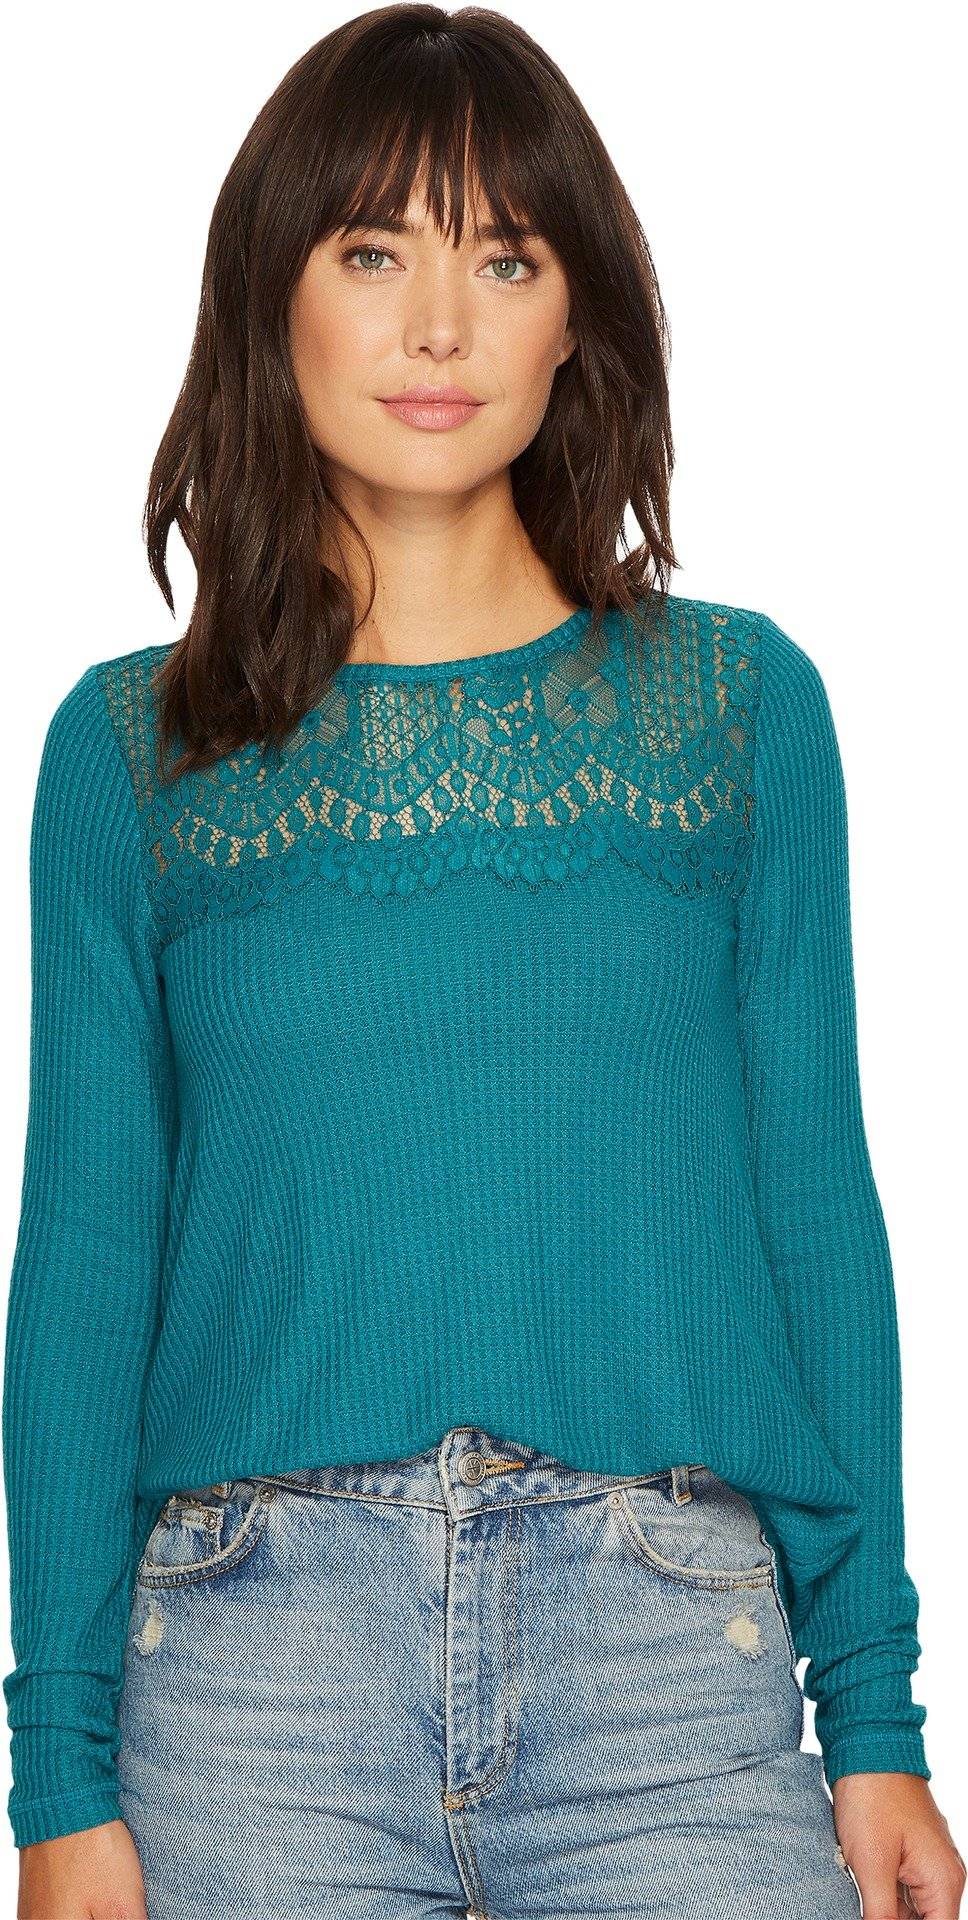 Lucky Brand Women's Lace Collar Thermal Top, Shaded Spruce, Medium